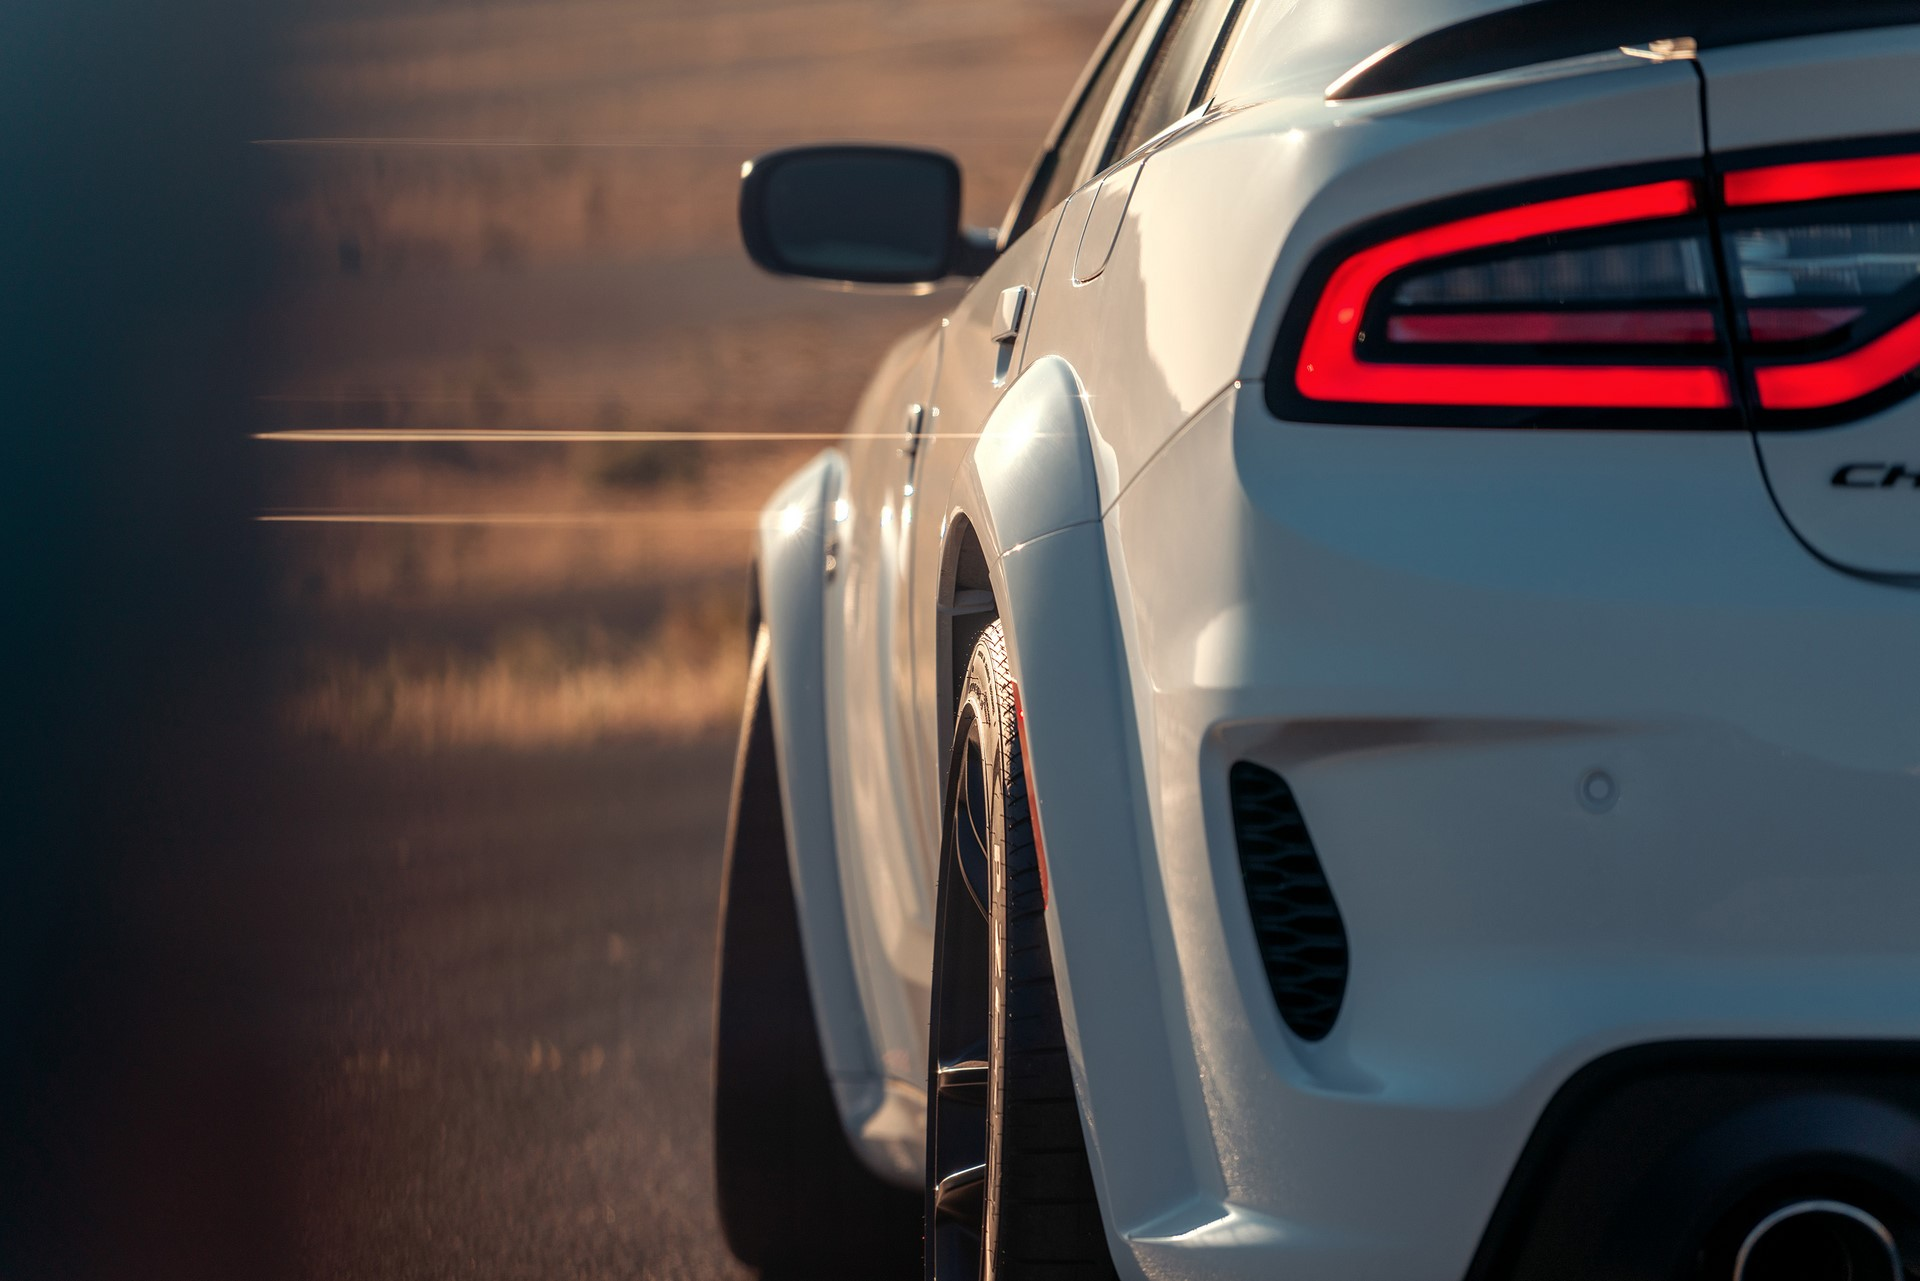 New integrated fender flares add 3.5-inches of width to make room for the wider 20 x 11-inch wheels on the 2020 Dodge Charger Scat Pack Widebody